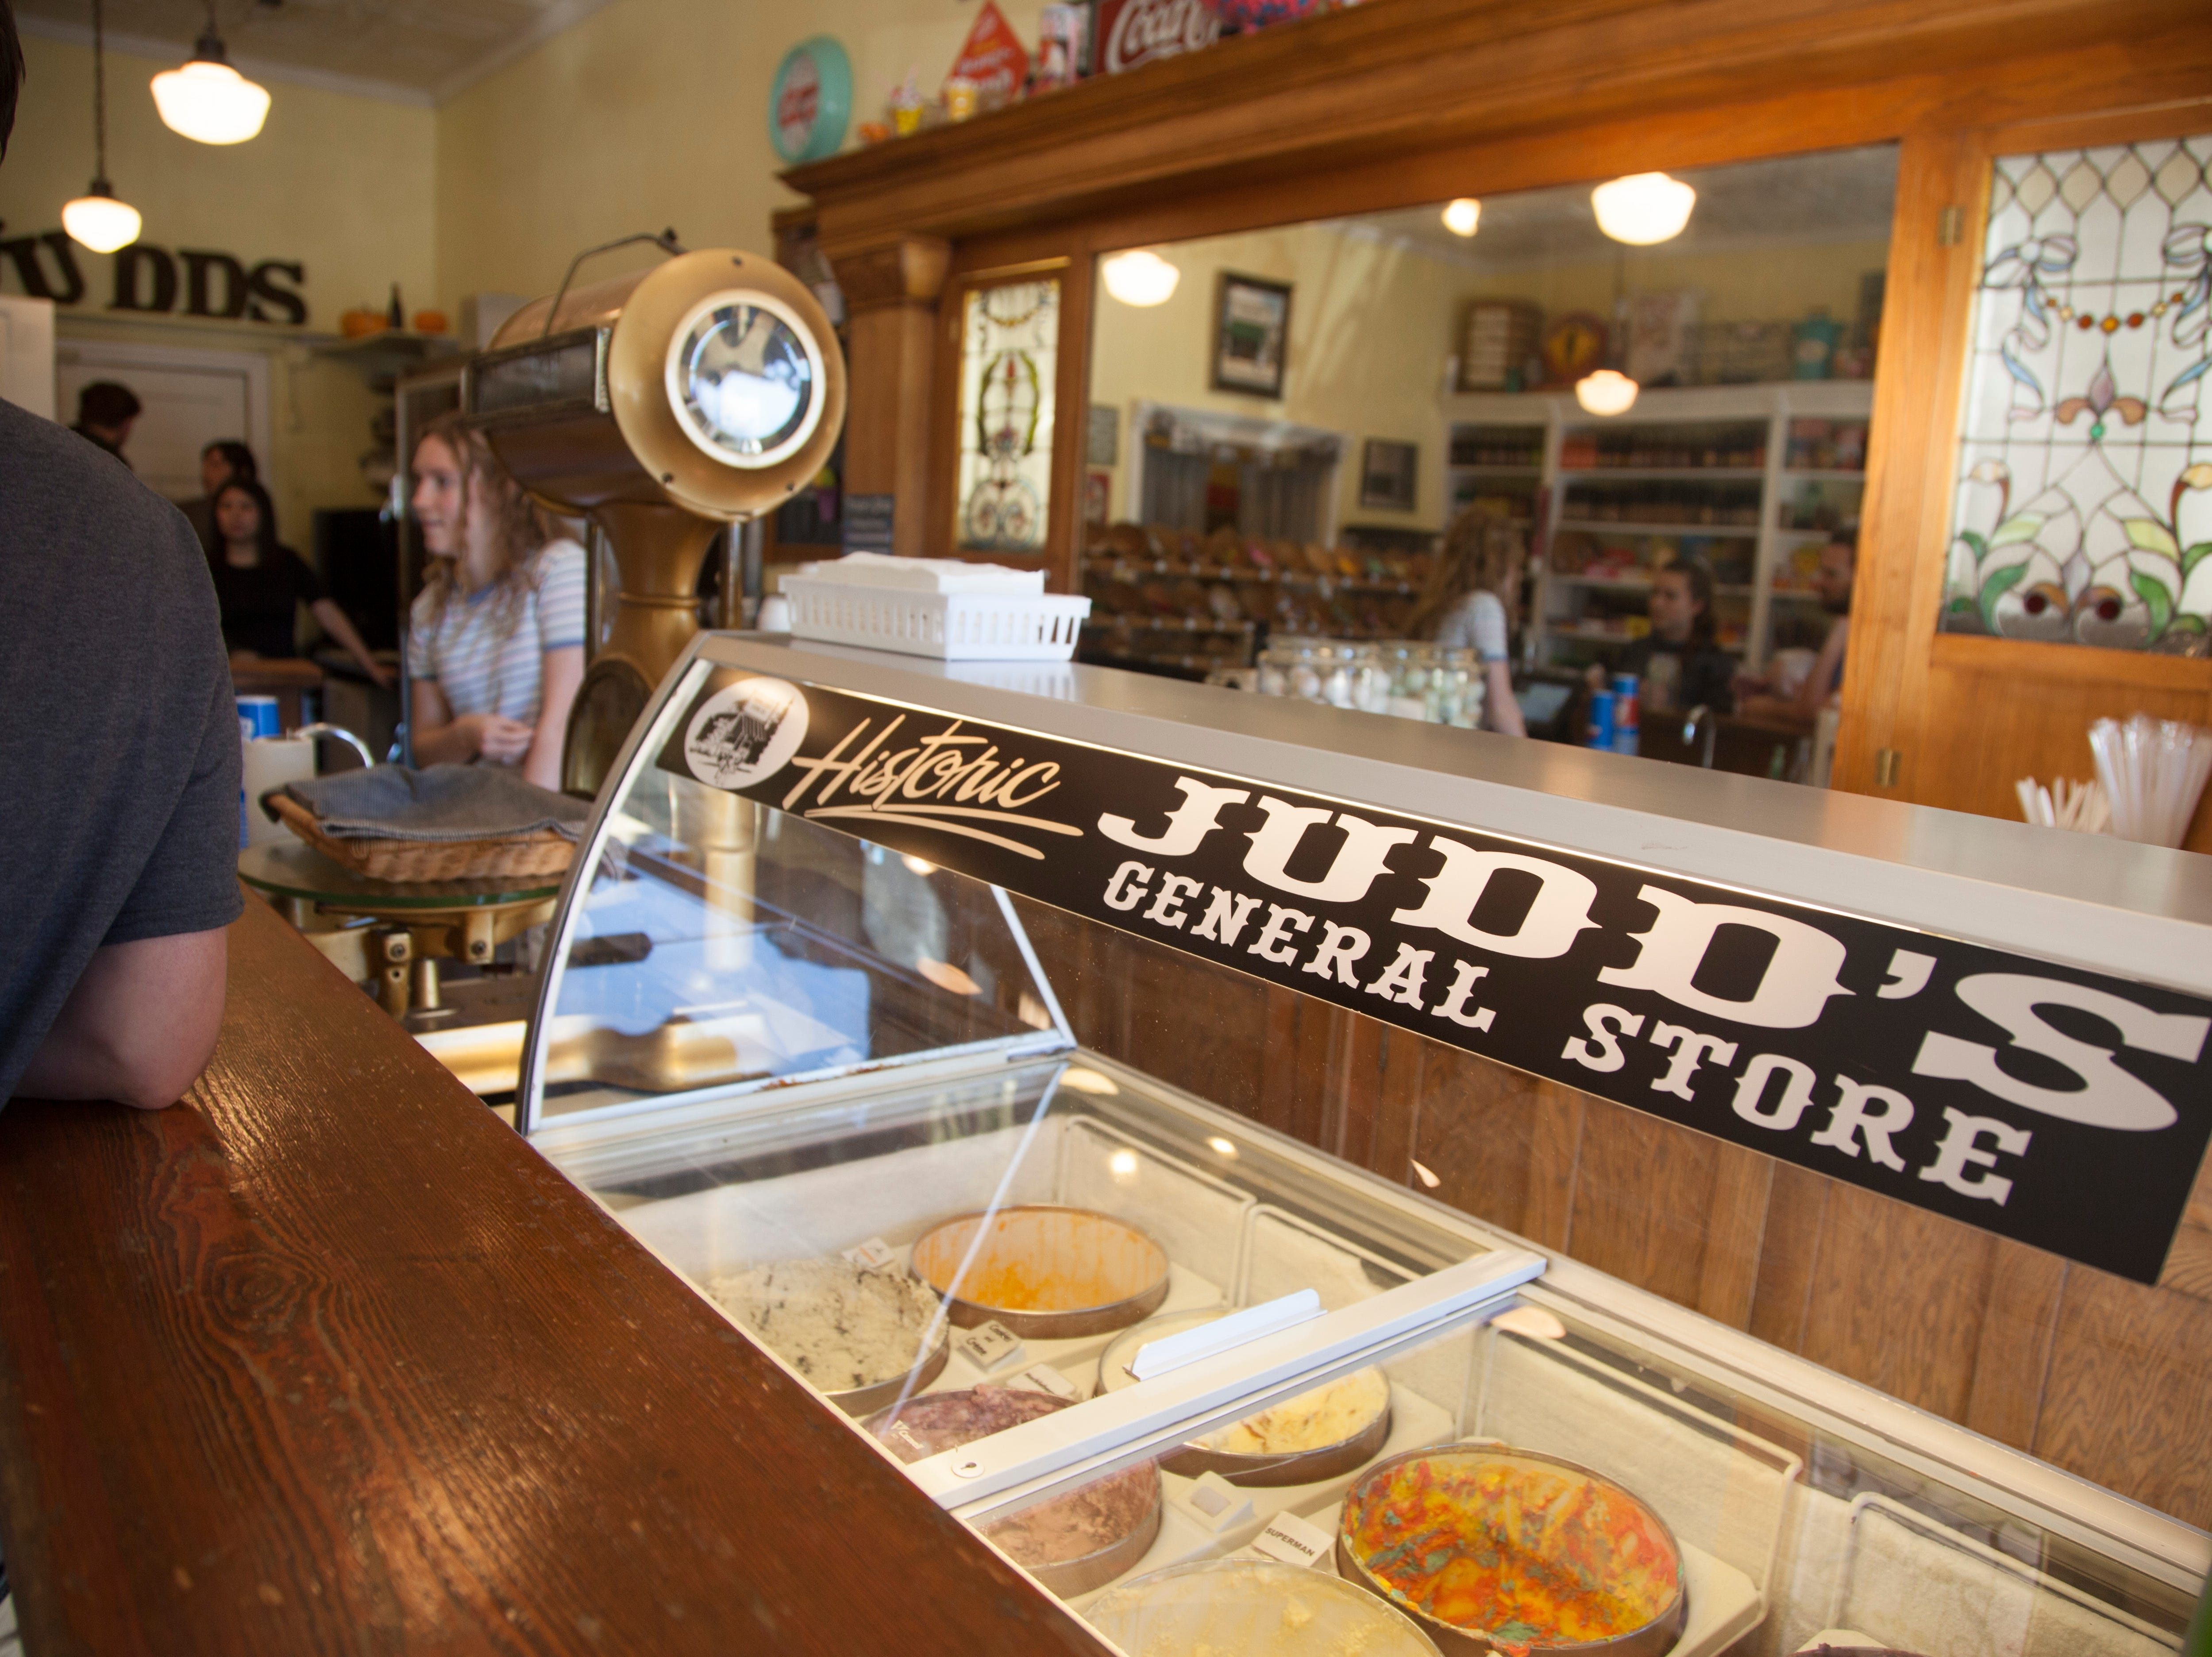 Community members recognize Small Business Saturday at Judd's Saturday, Nov. 24, 2018.